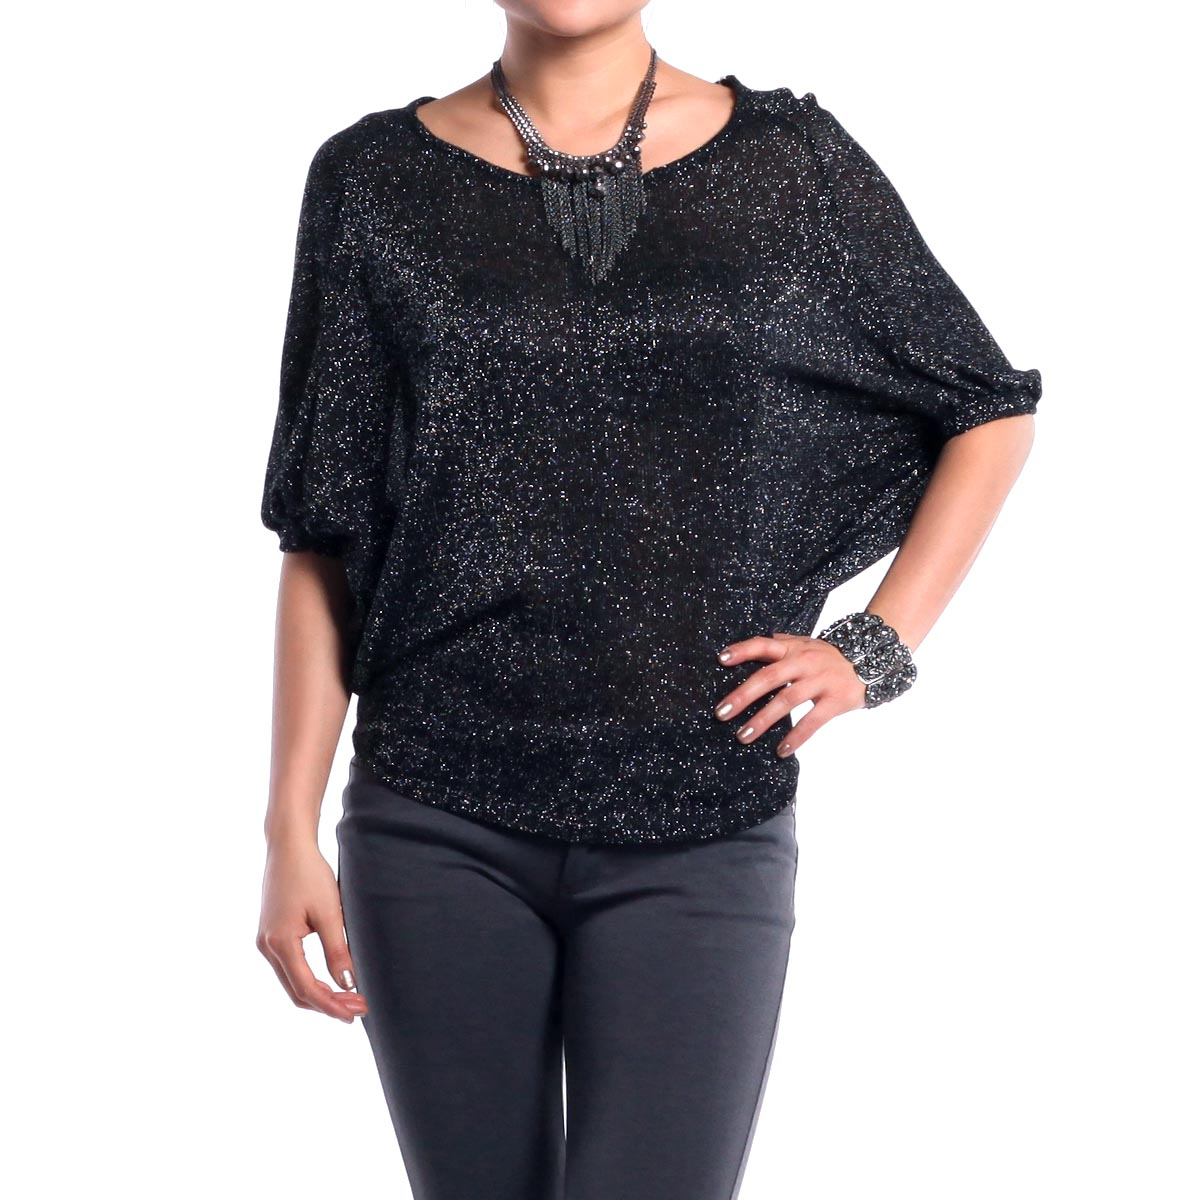 Sparkle batwing top by jella couture